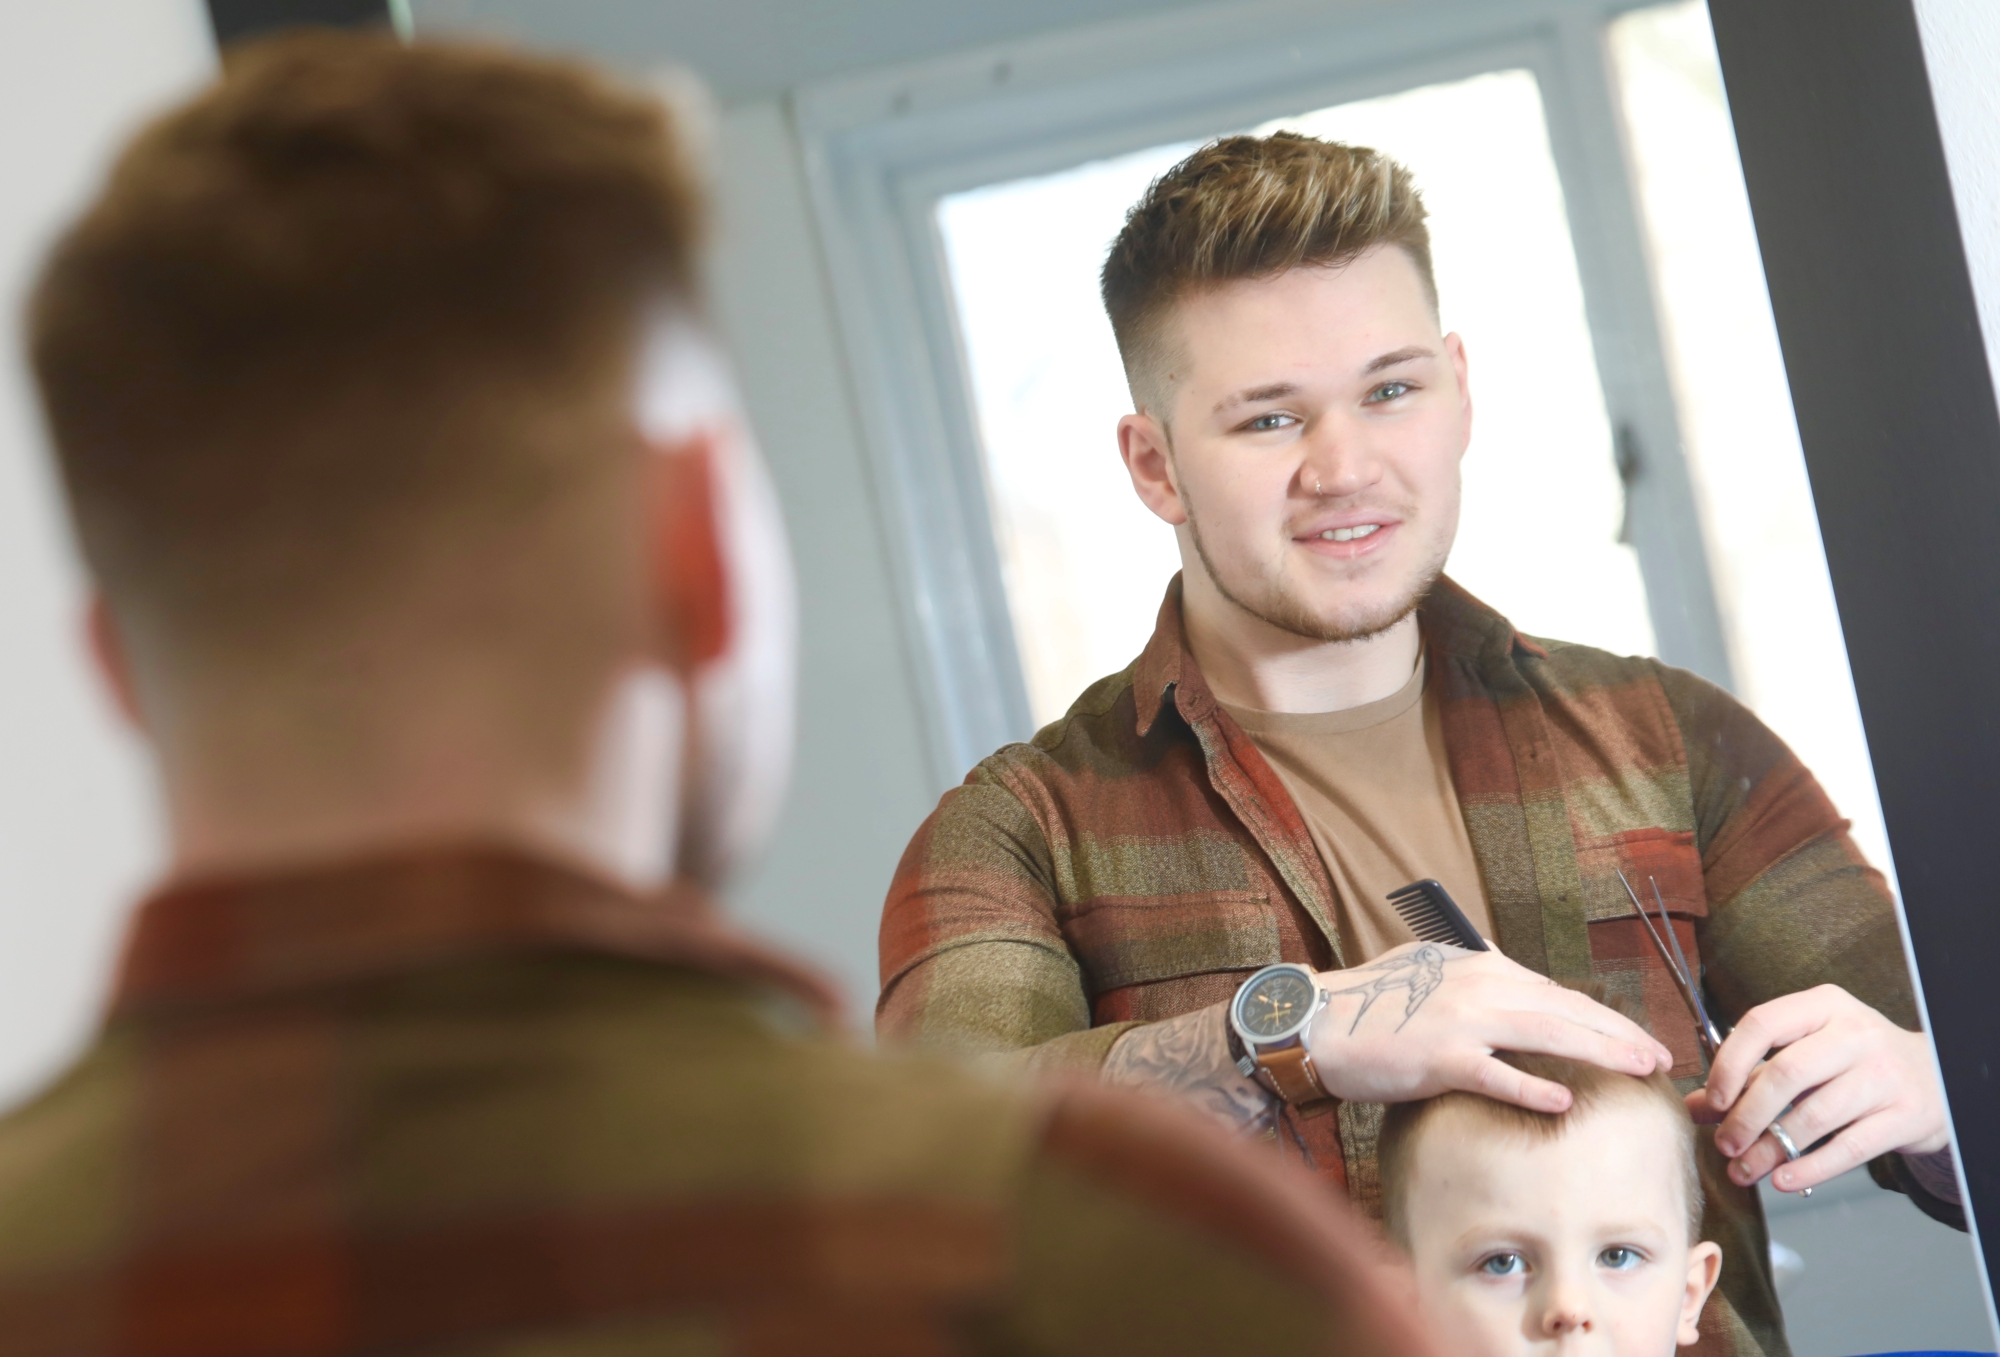 Northumberland College barbering student and apprentice, Reece Whitworth.